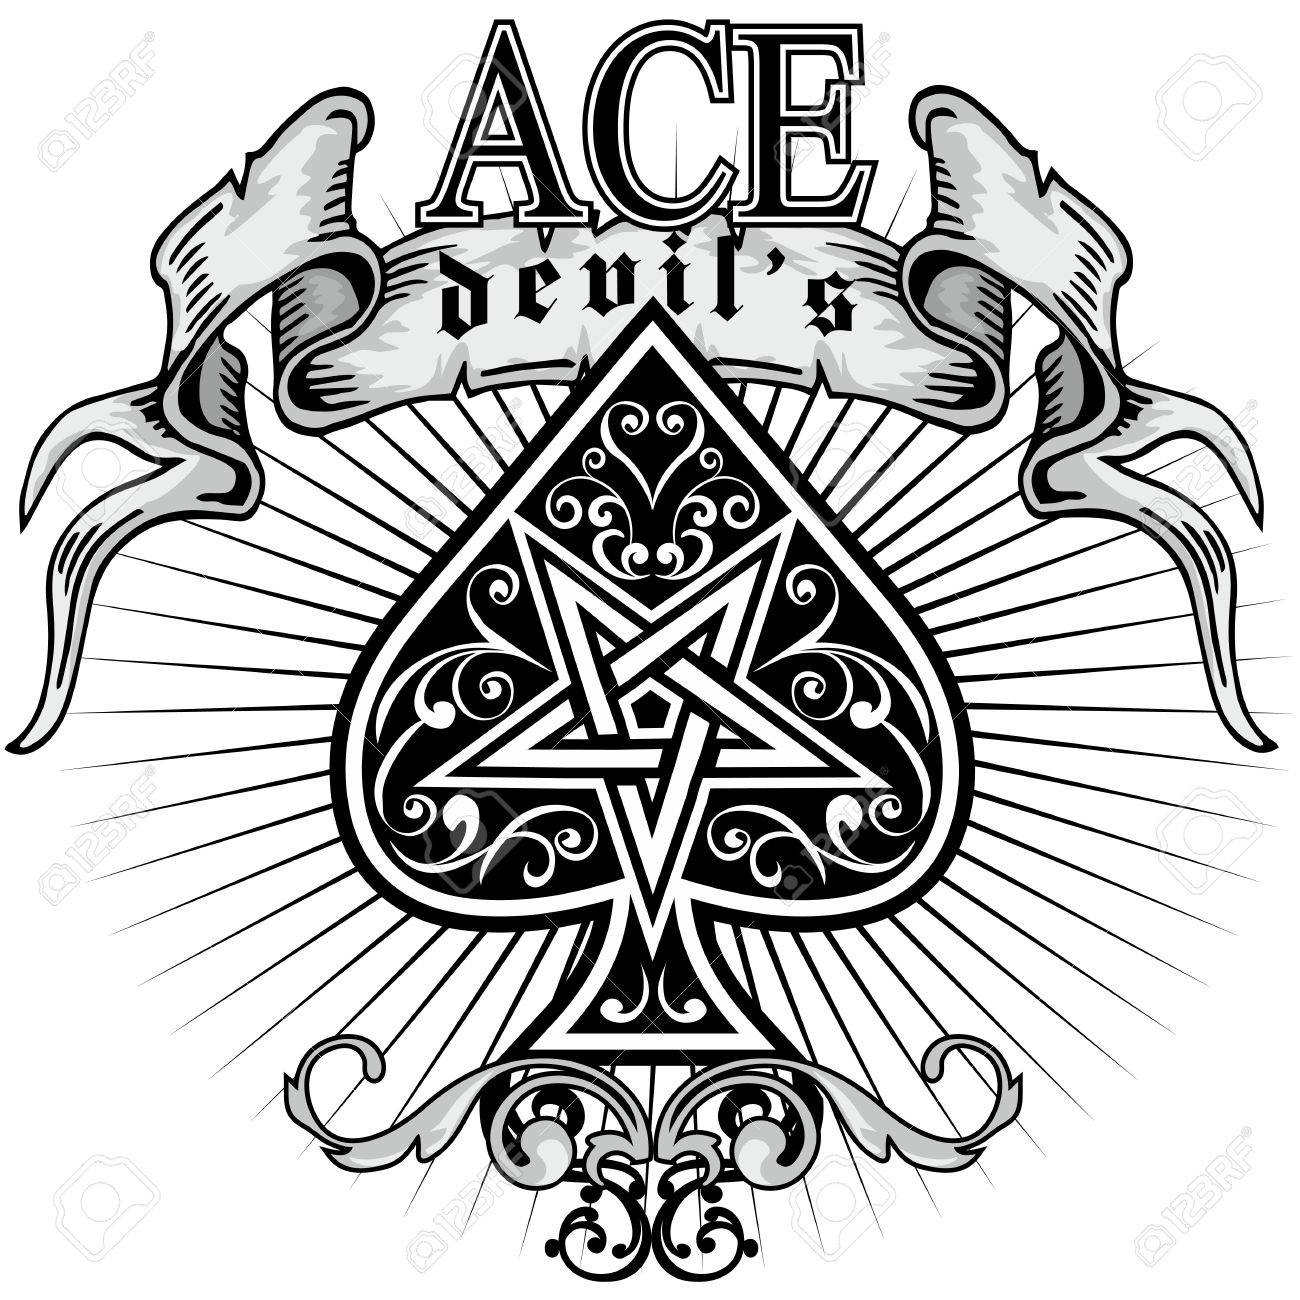 Ace of spades stock vector 66528292